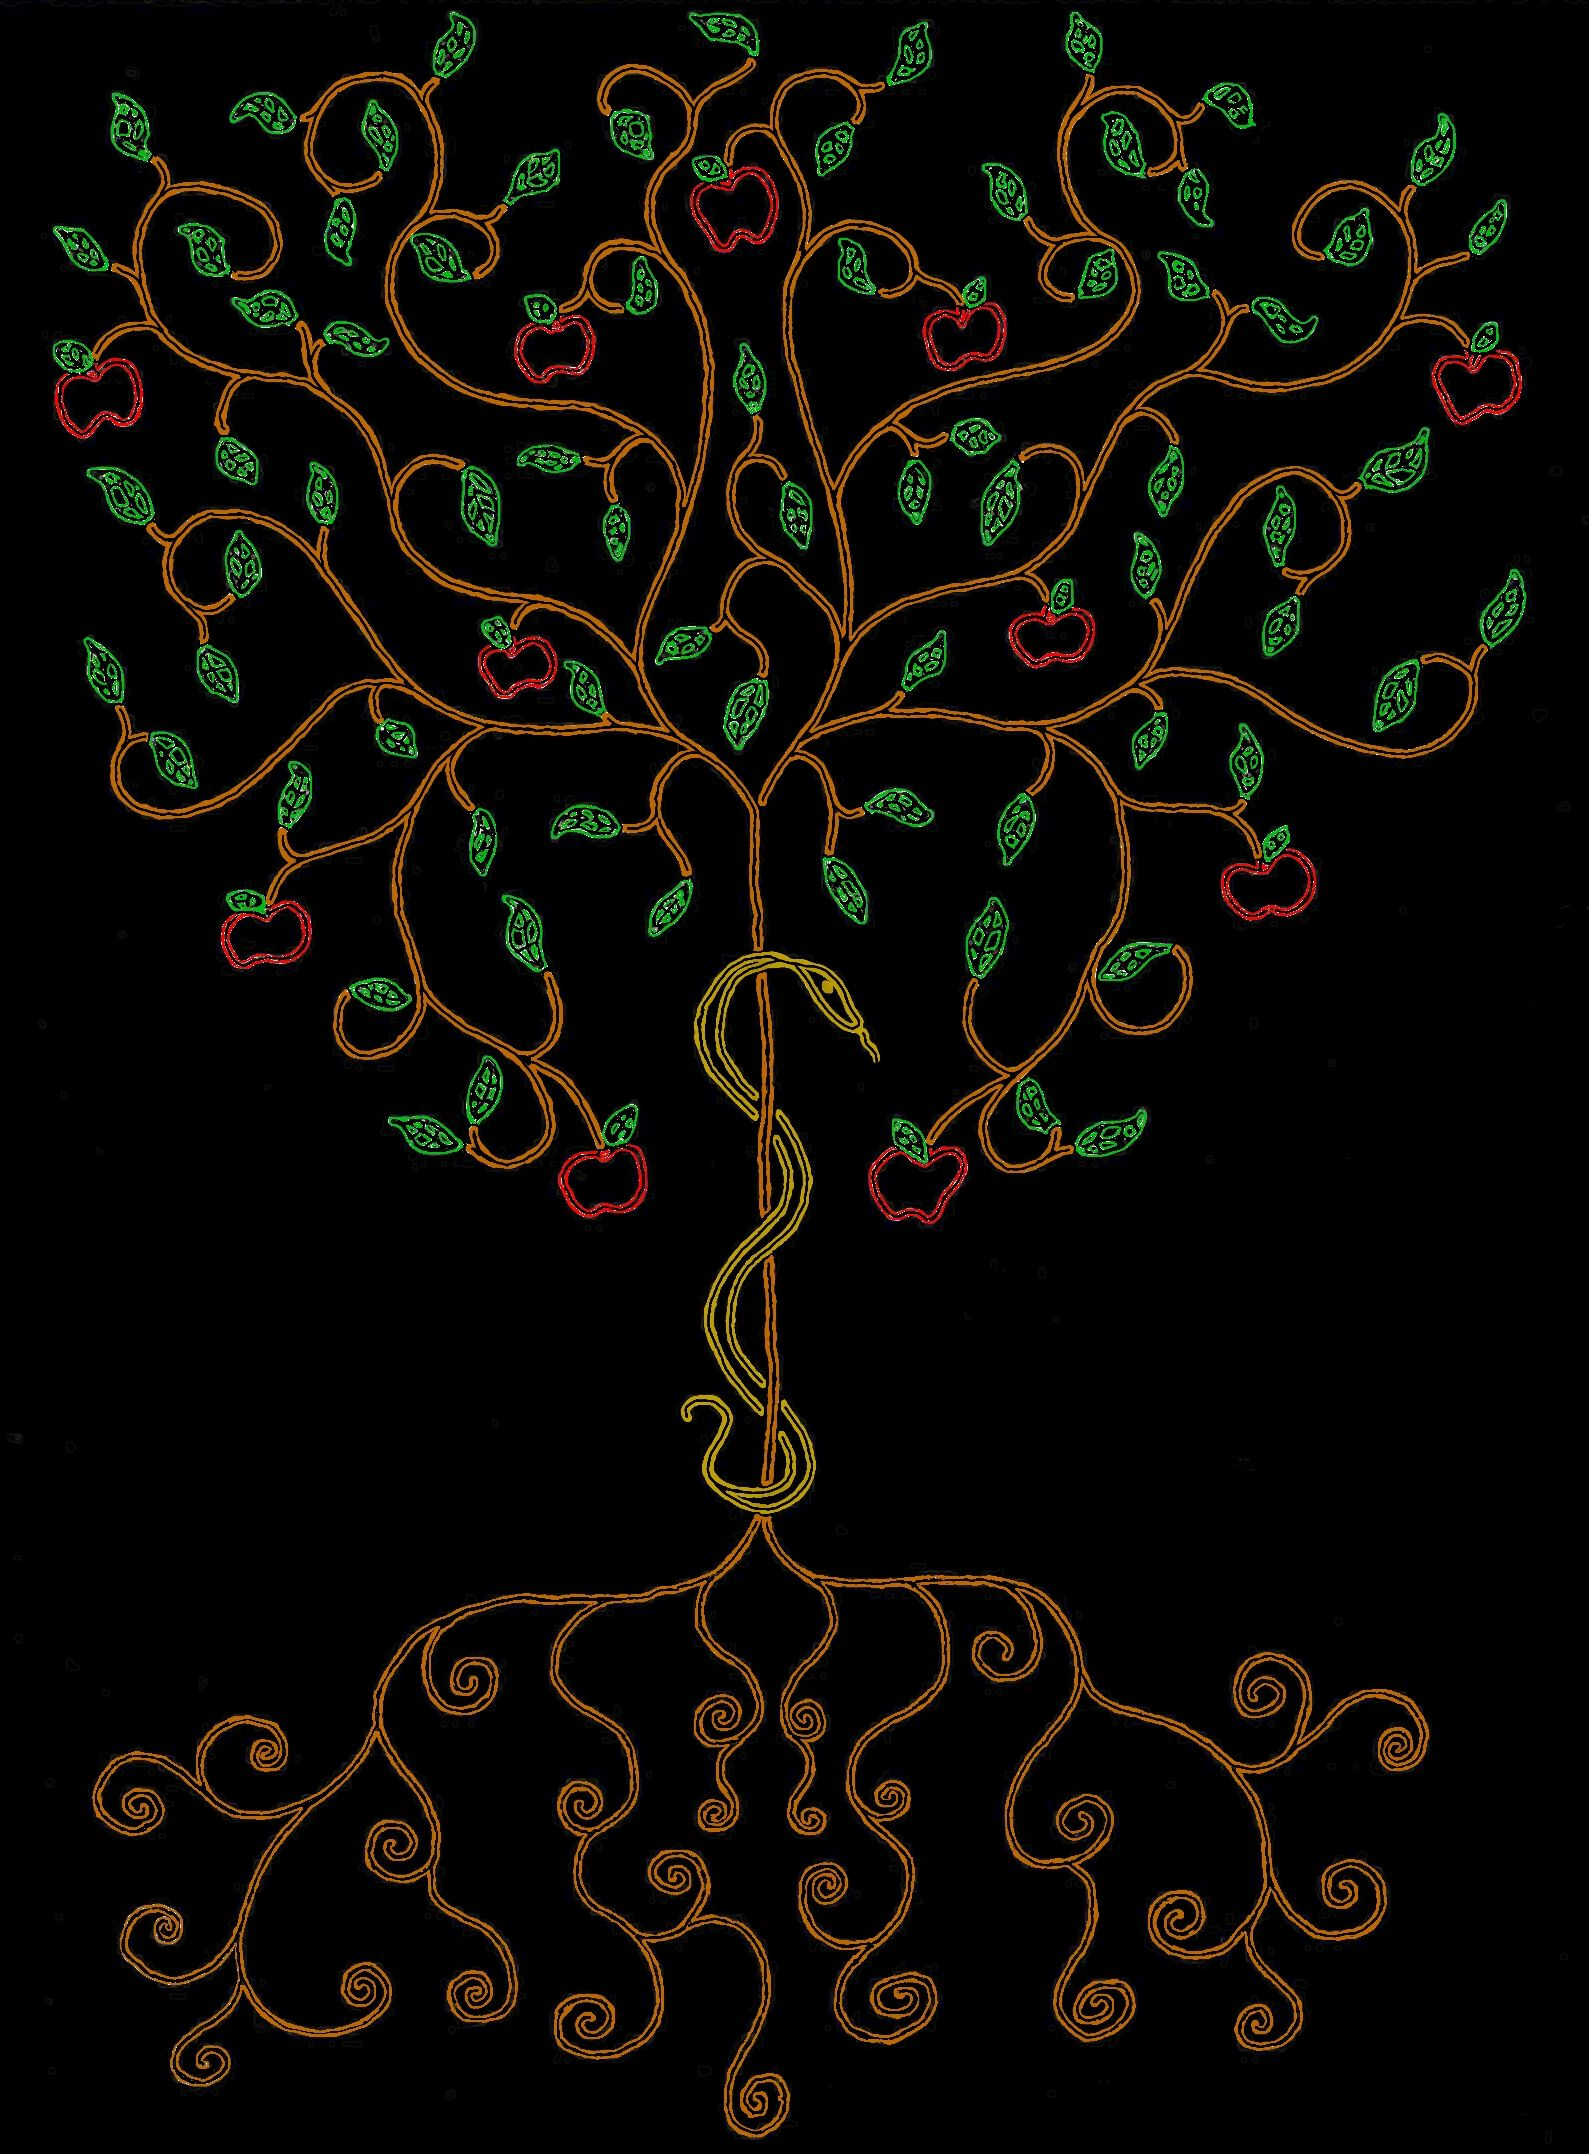 The serpent in the tree of knowledge patrick larabee sorcerous the serpent in the tree of knowledge patrick larabee kristyandbryce Gallery